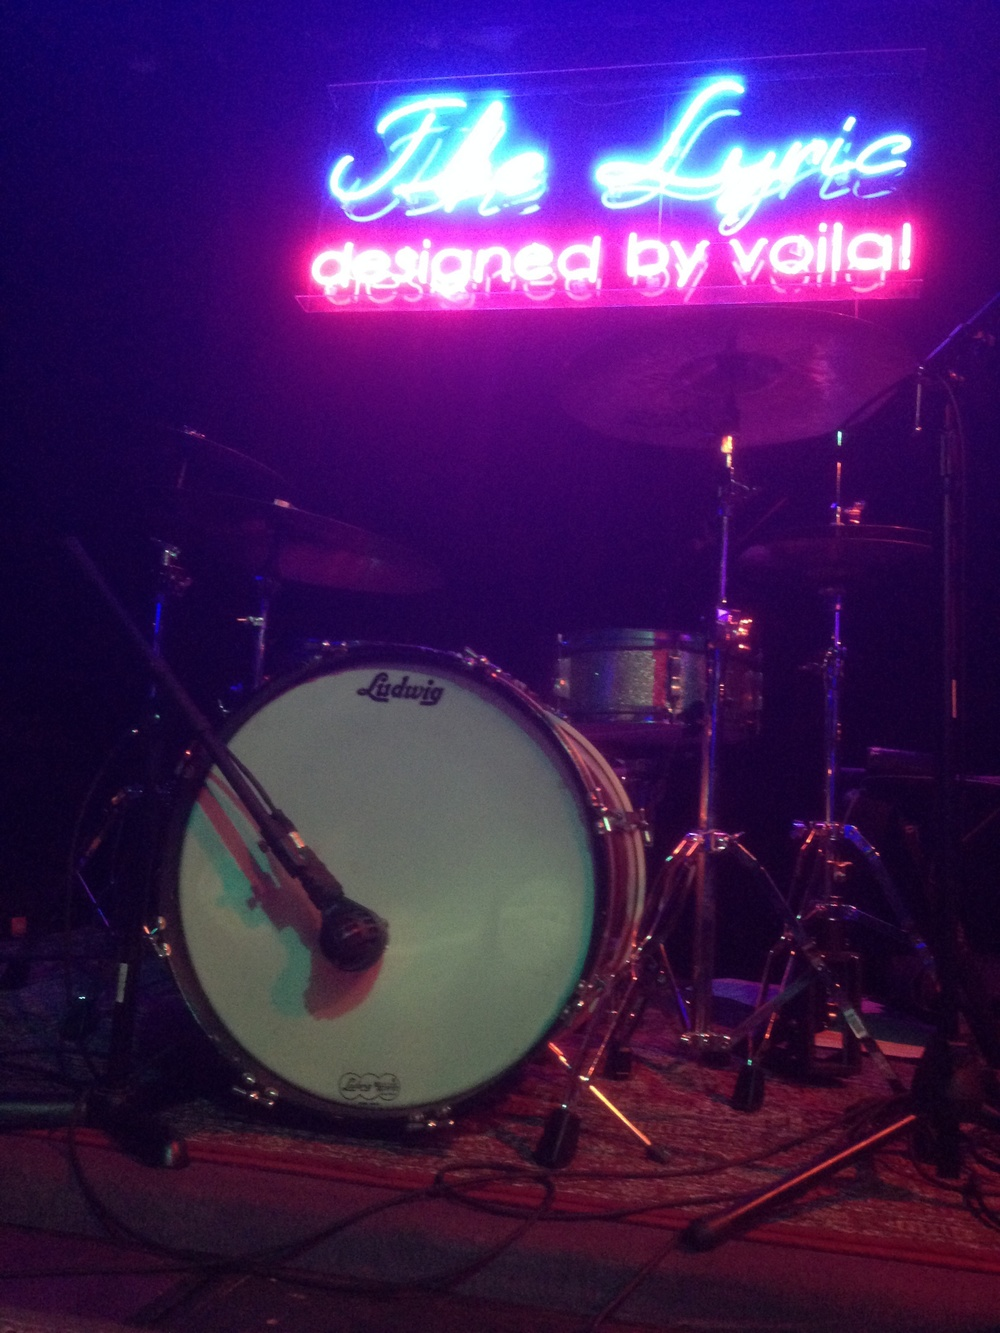 joe's sparkly, vintage drumset looked great in the lighting